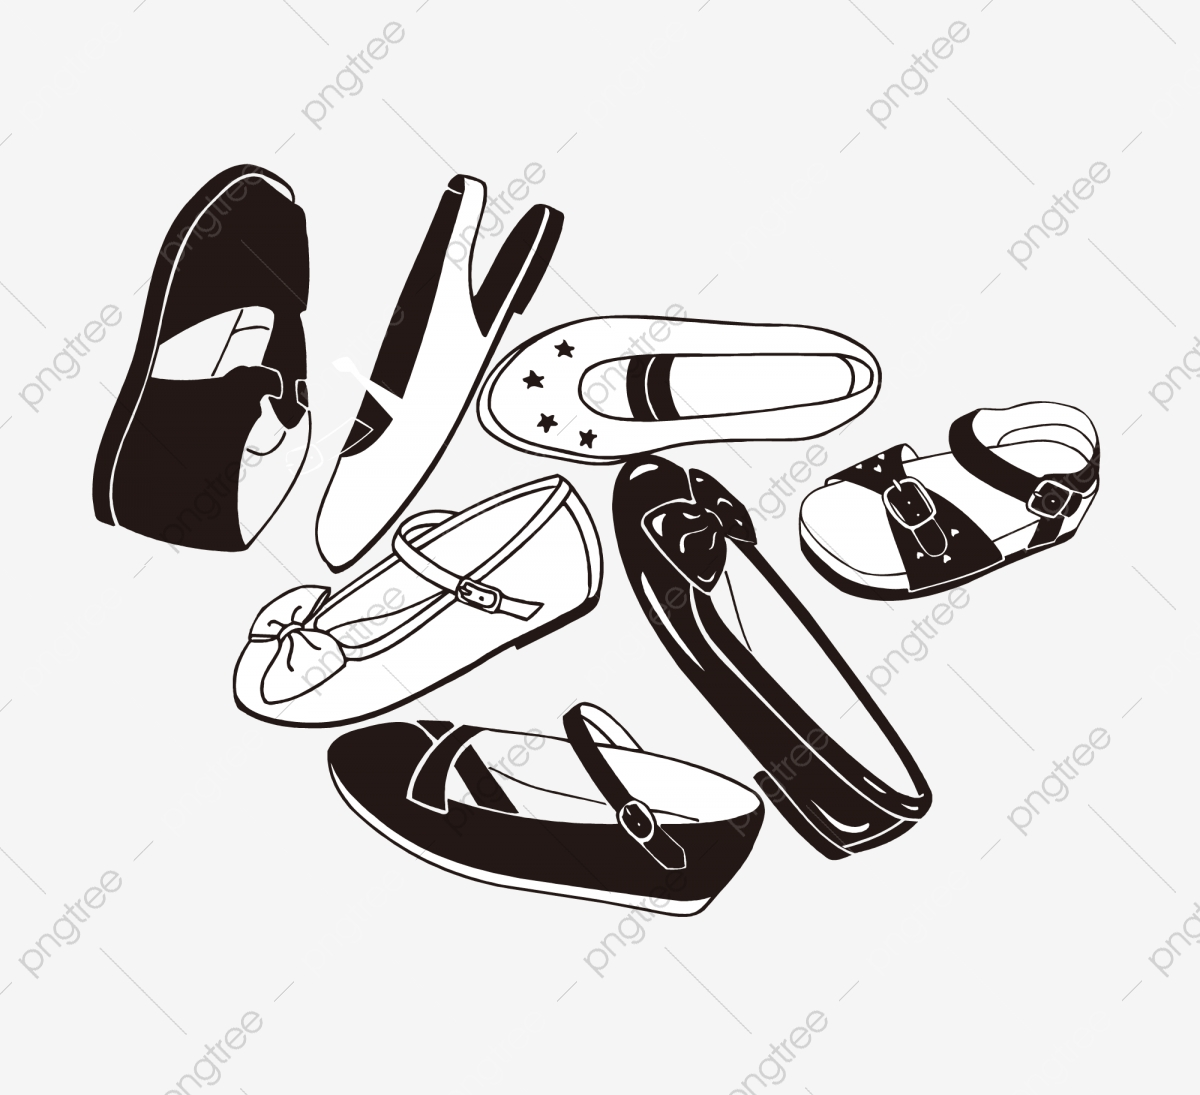 74af40b972b Commercial use resource. Upgrade to Premium plan and get license  authorization.UpgradeNow · shoes line draft shoes black and white ...